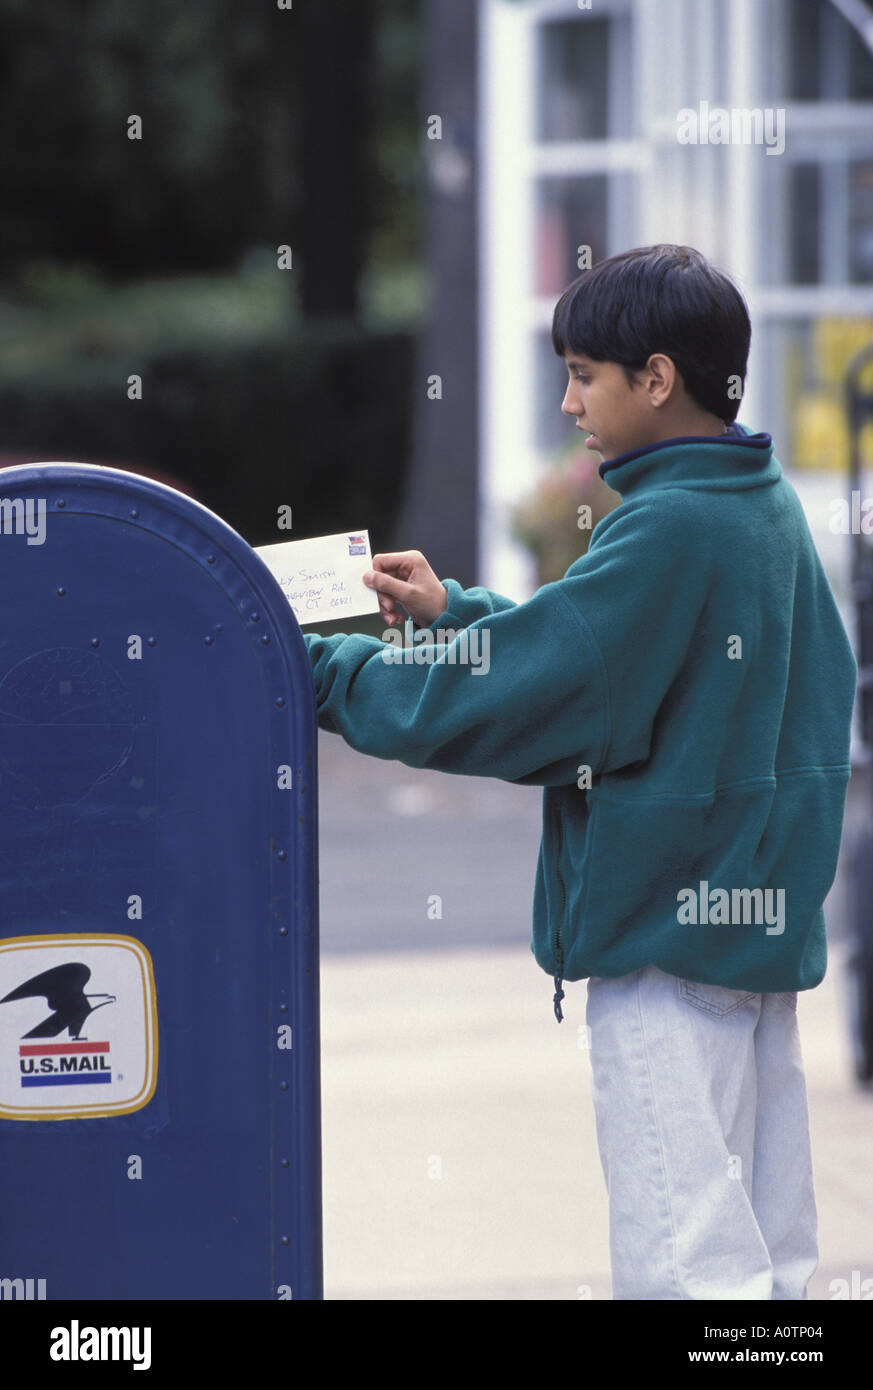 Asian American Boy Mailing Letter In Mailbox Stock Photo